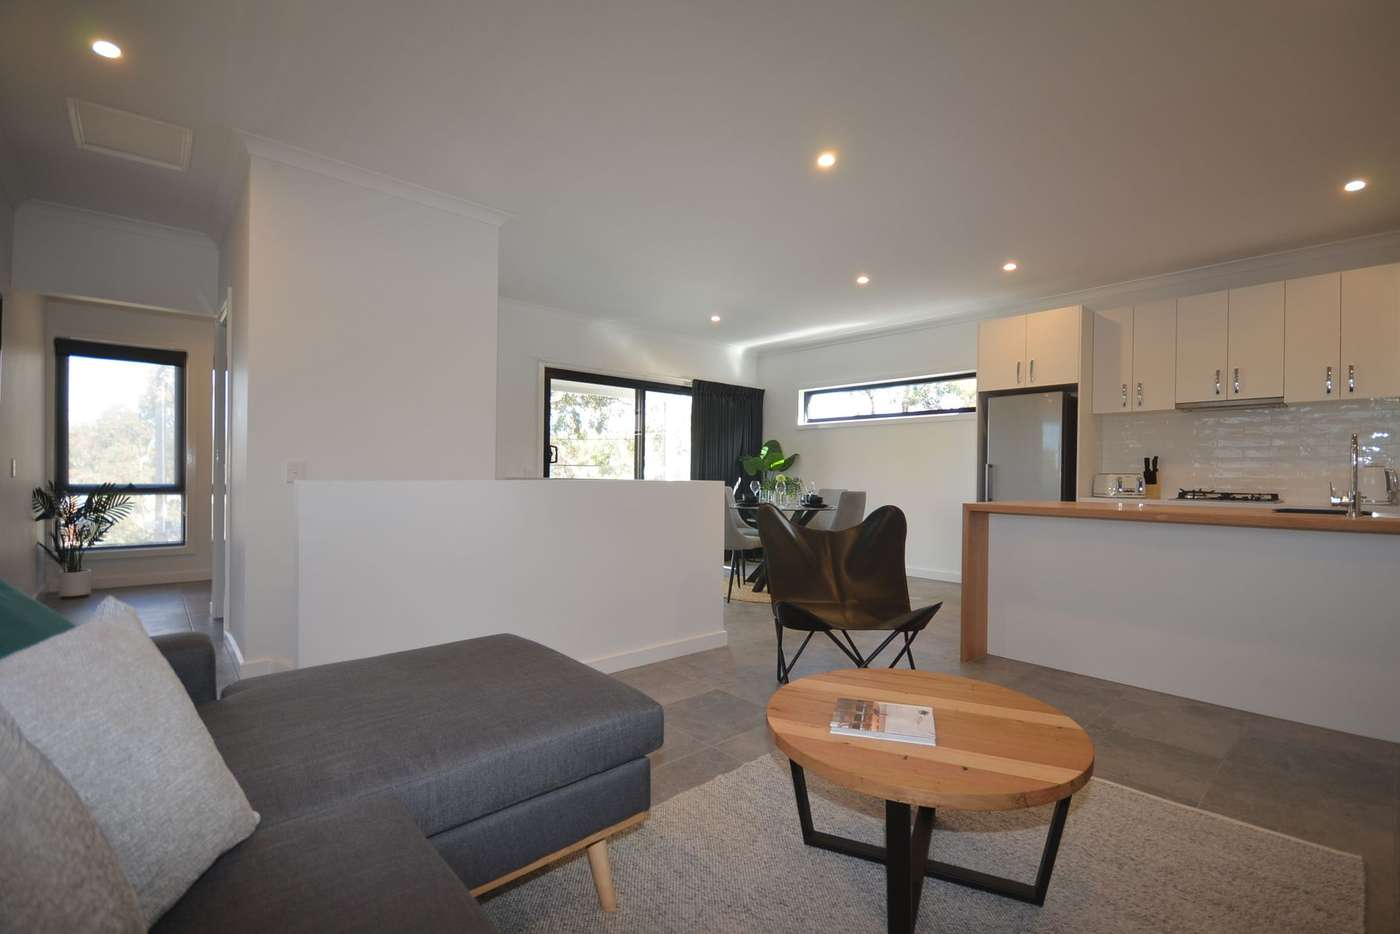 Sixth view of Homely house listing, 1/164 Arnold Street, Bendigo VIC 3550